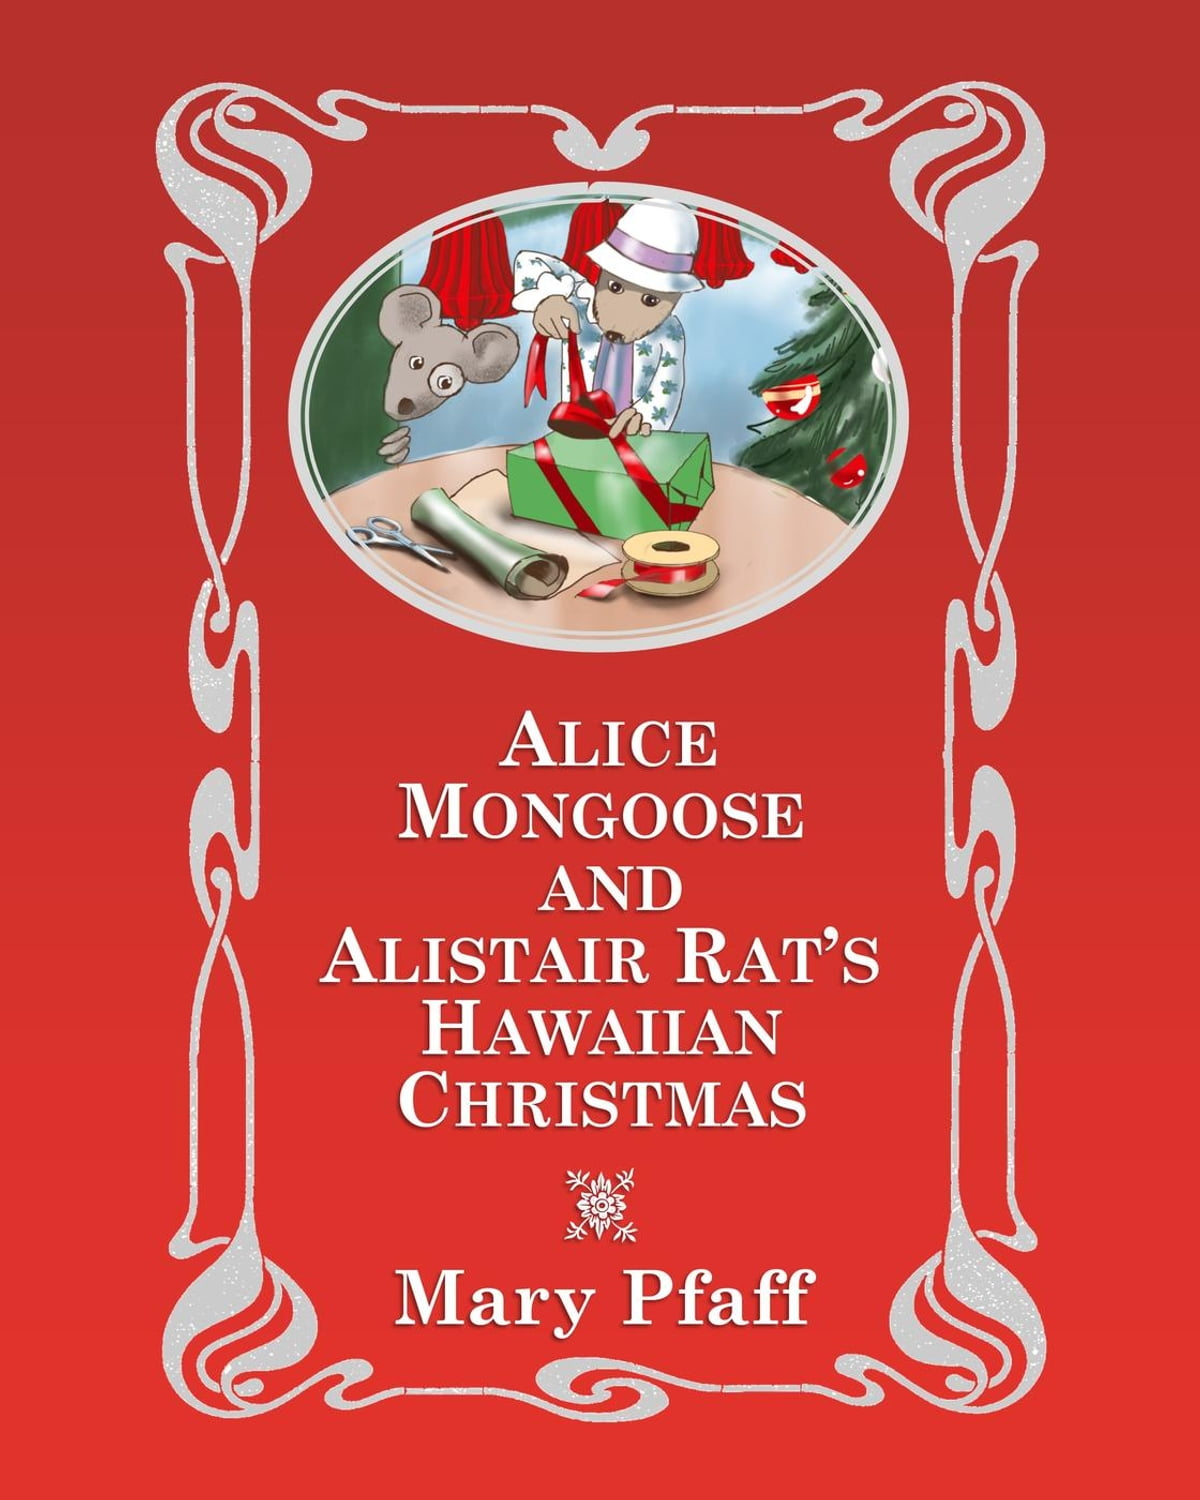 Alice Mongoose And Alistair Rats Hawaiian Christmas Ebook By Mary